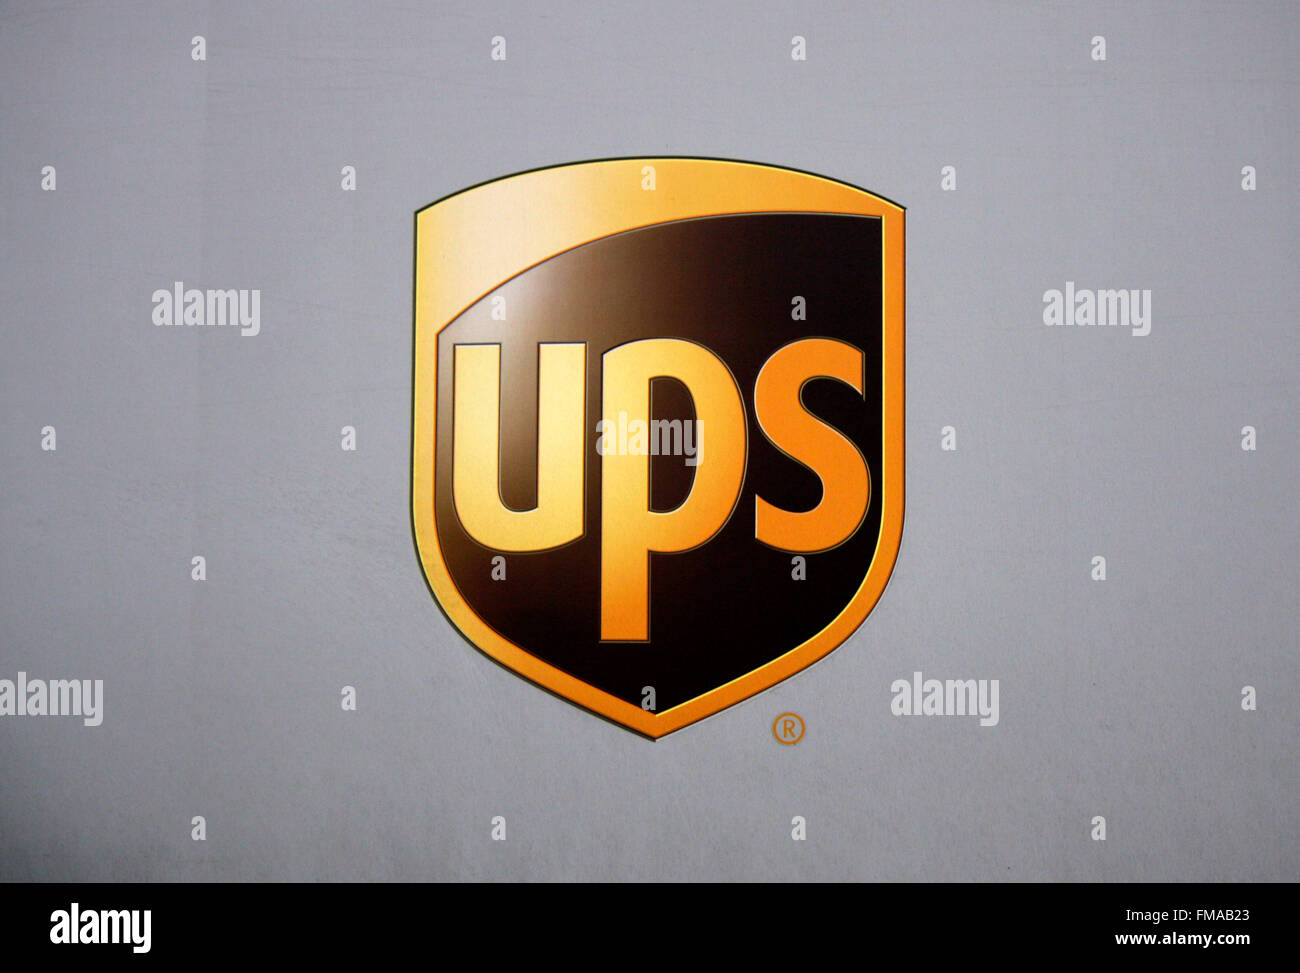 Markenname : 'UPS - United Parcel Service', Dezember 2013, Berlin. Photo Stock